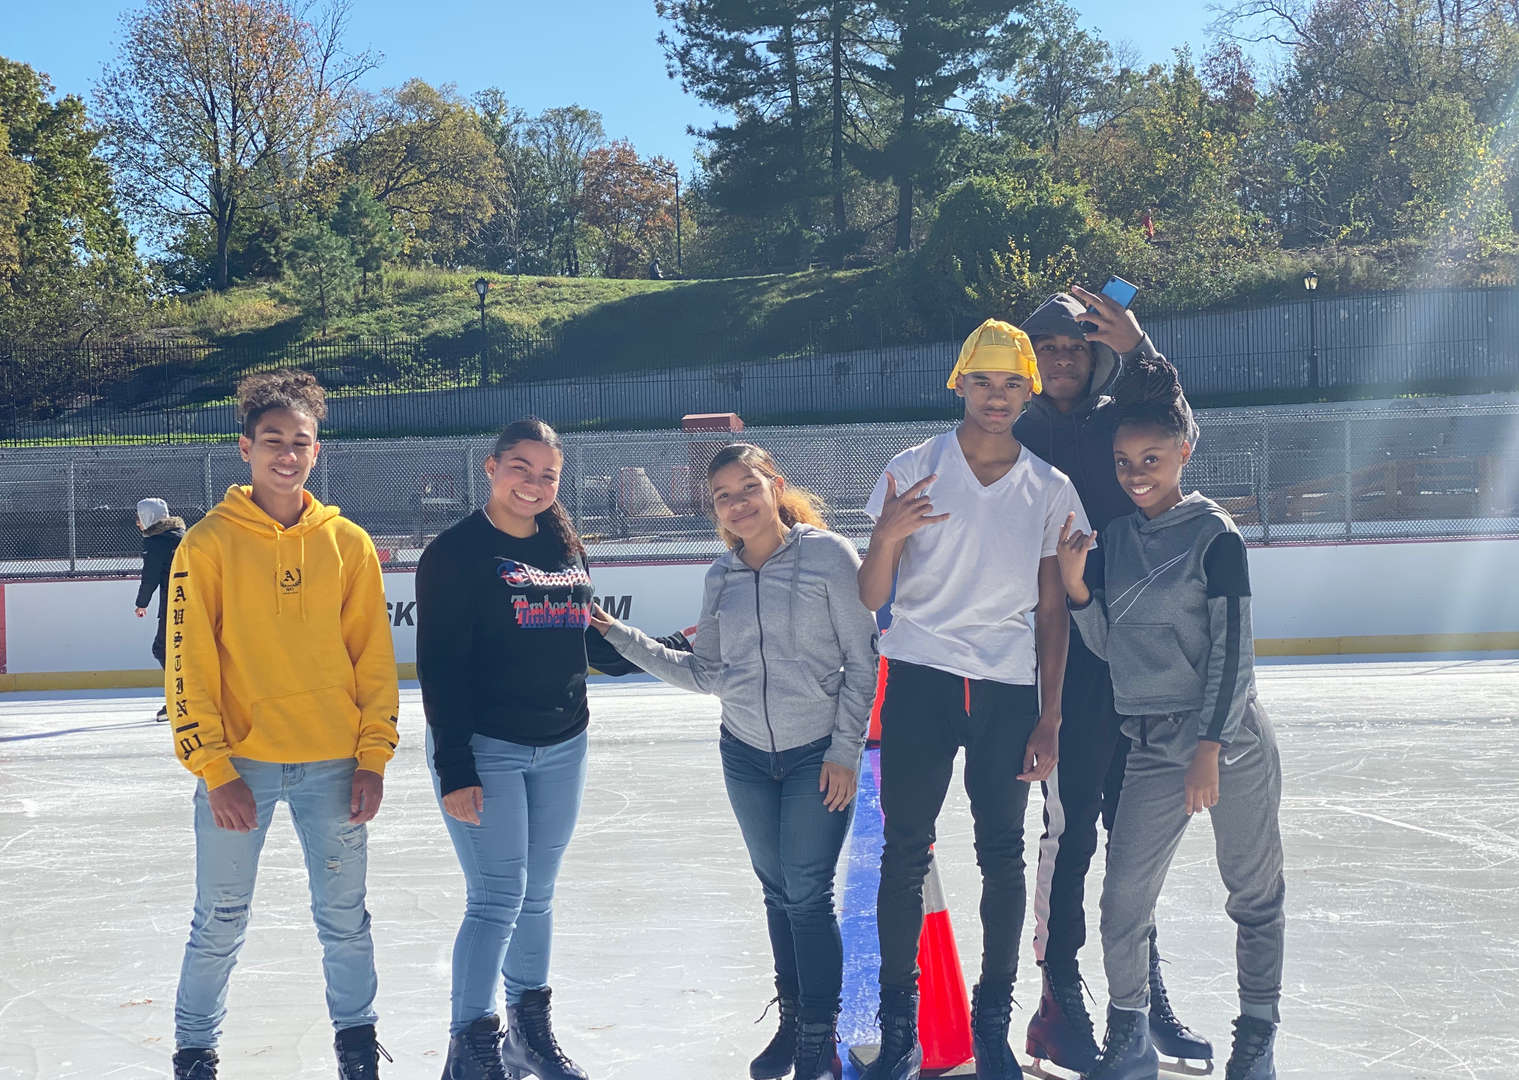 Six students stand in the sun on an ice skating rink